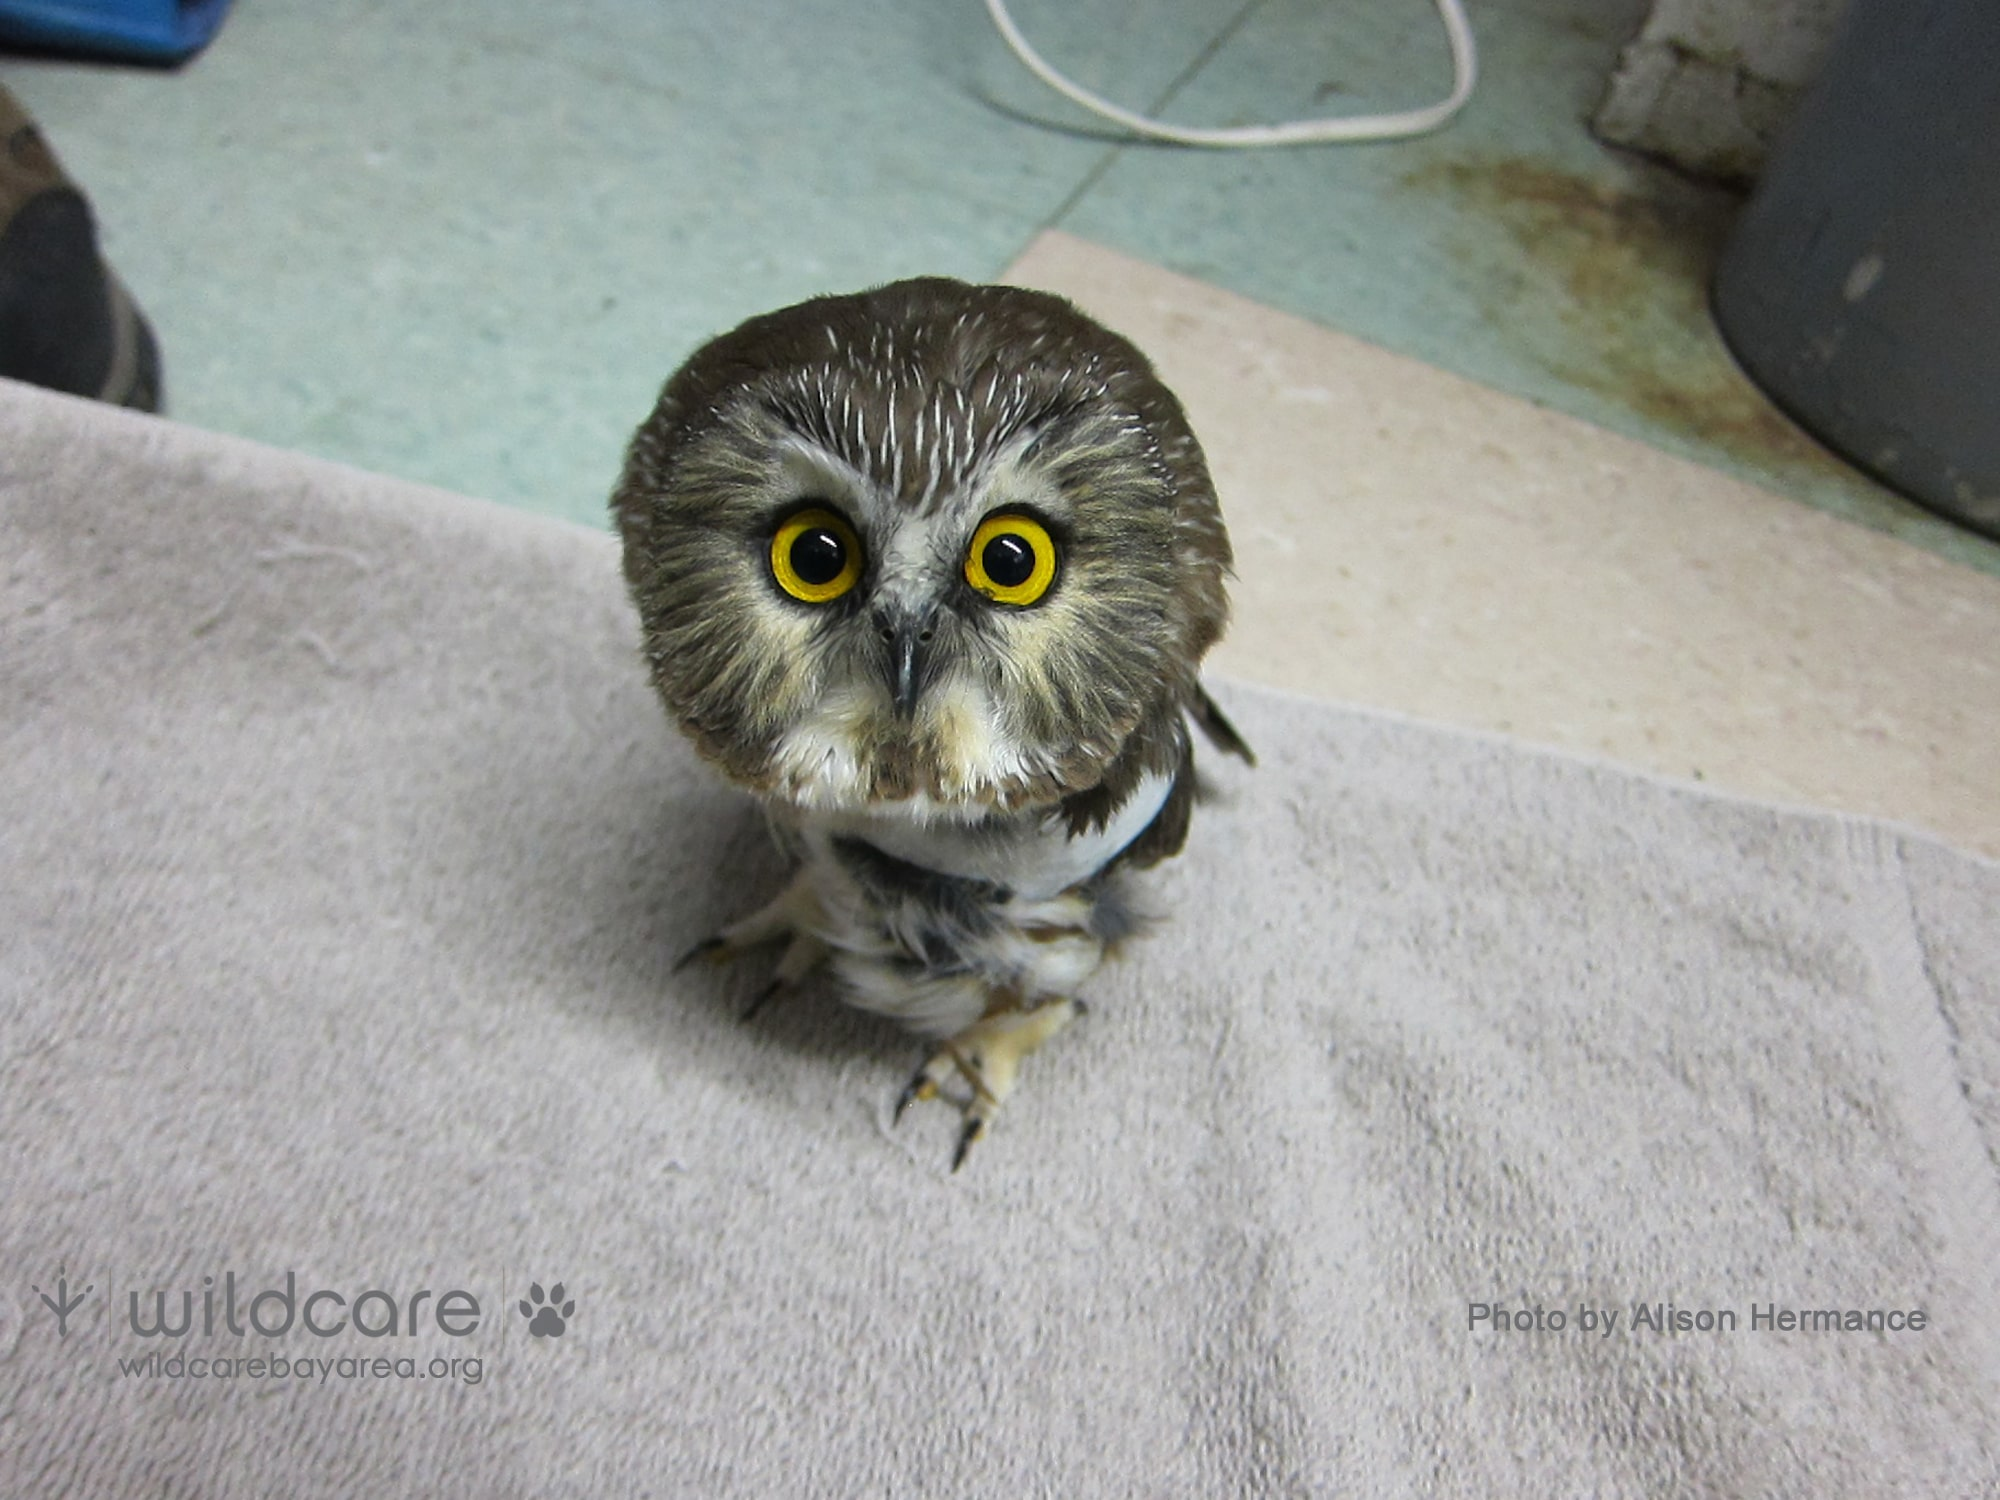 Northern Saw Whet Owl in care at WildCare. Photo by Alison Hermance